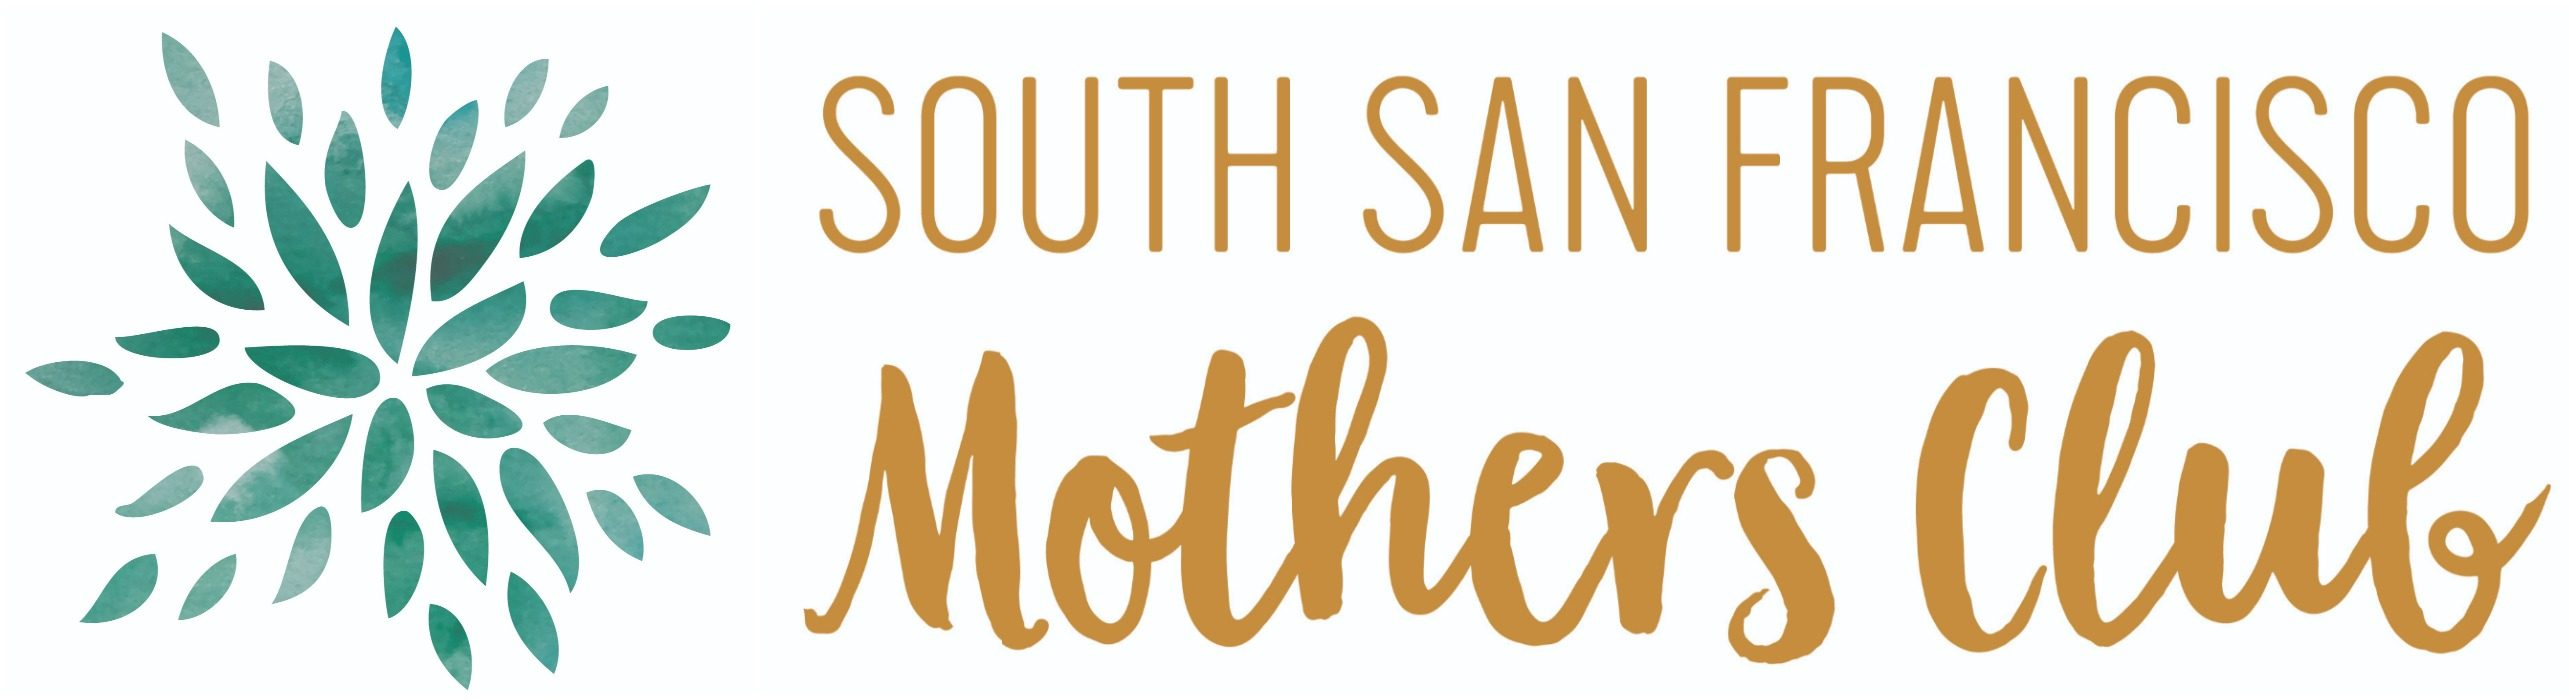 South San Francisco Mothers Club